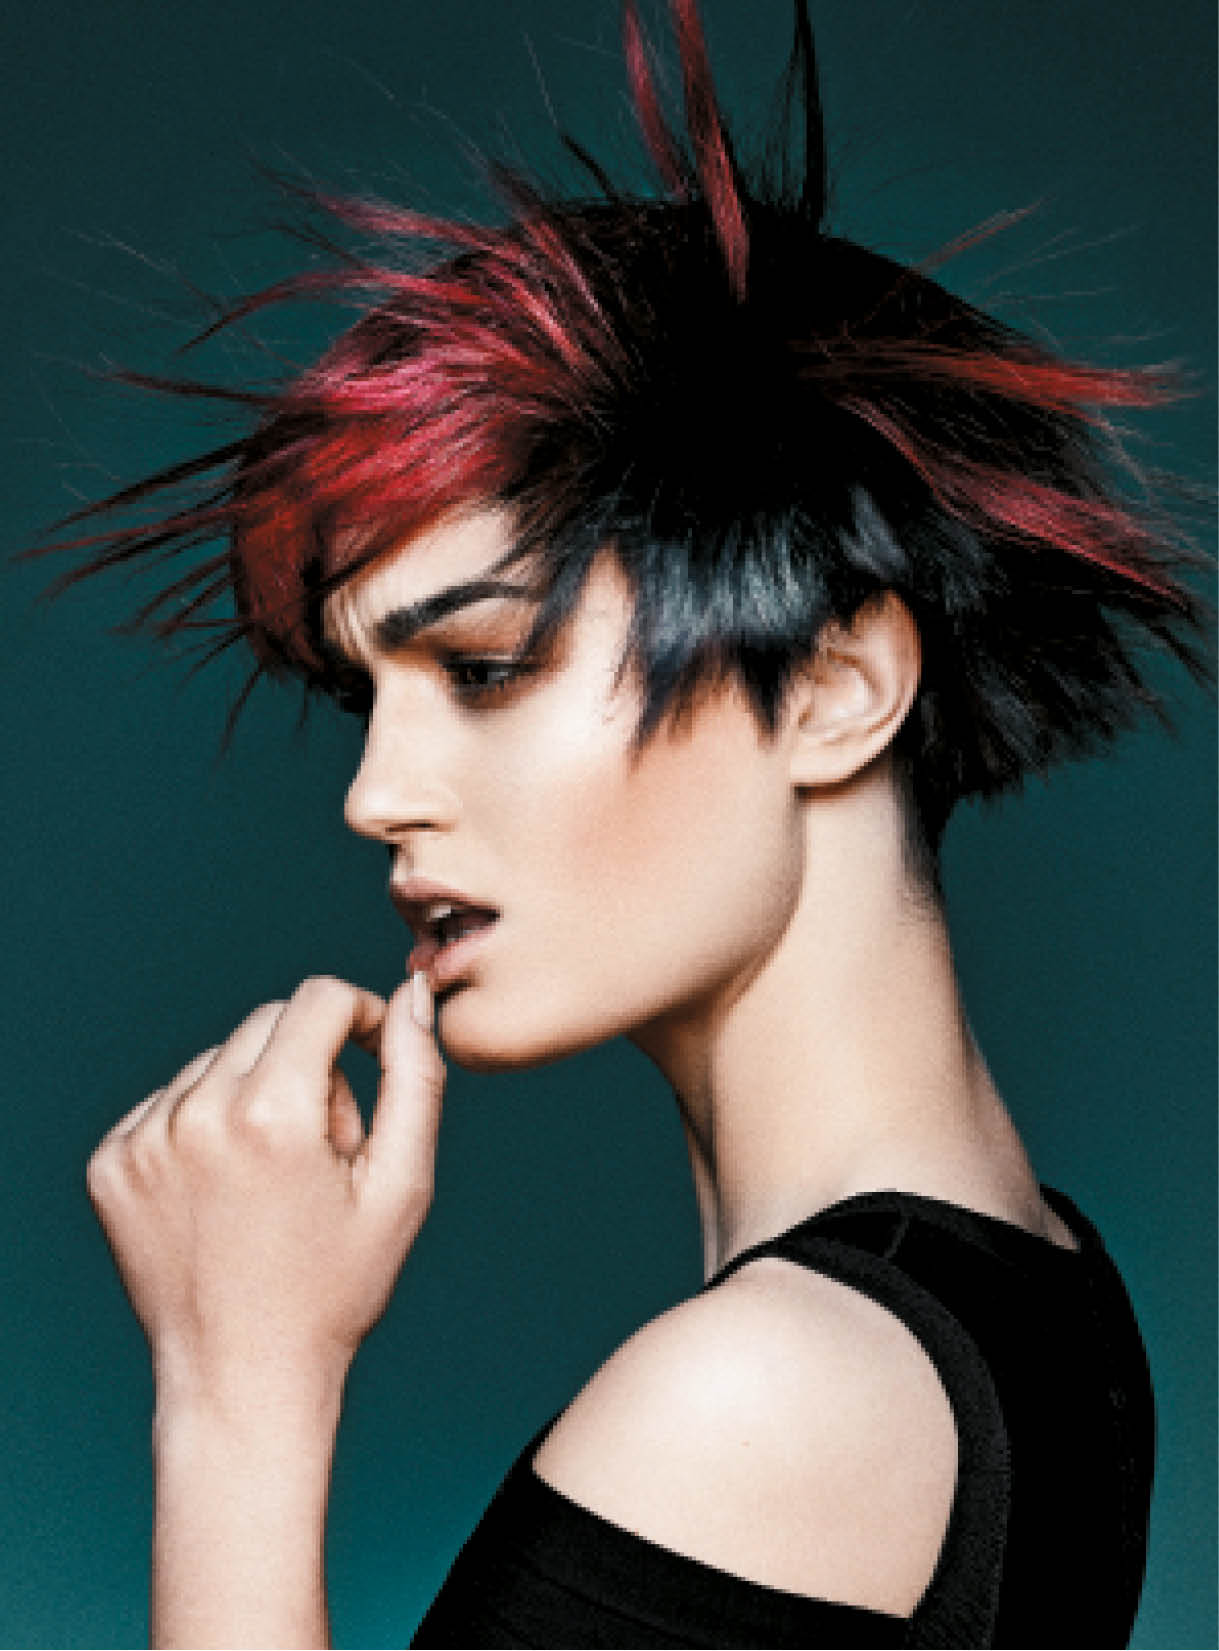 For thie eye-catching look, Barton paired vivid red and dark hues, and turned up the texture.